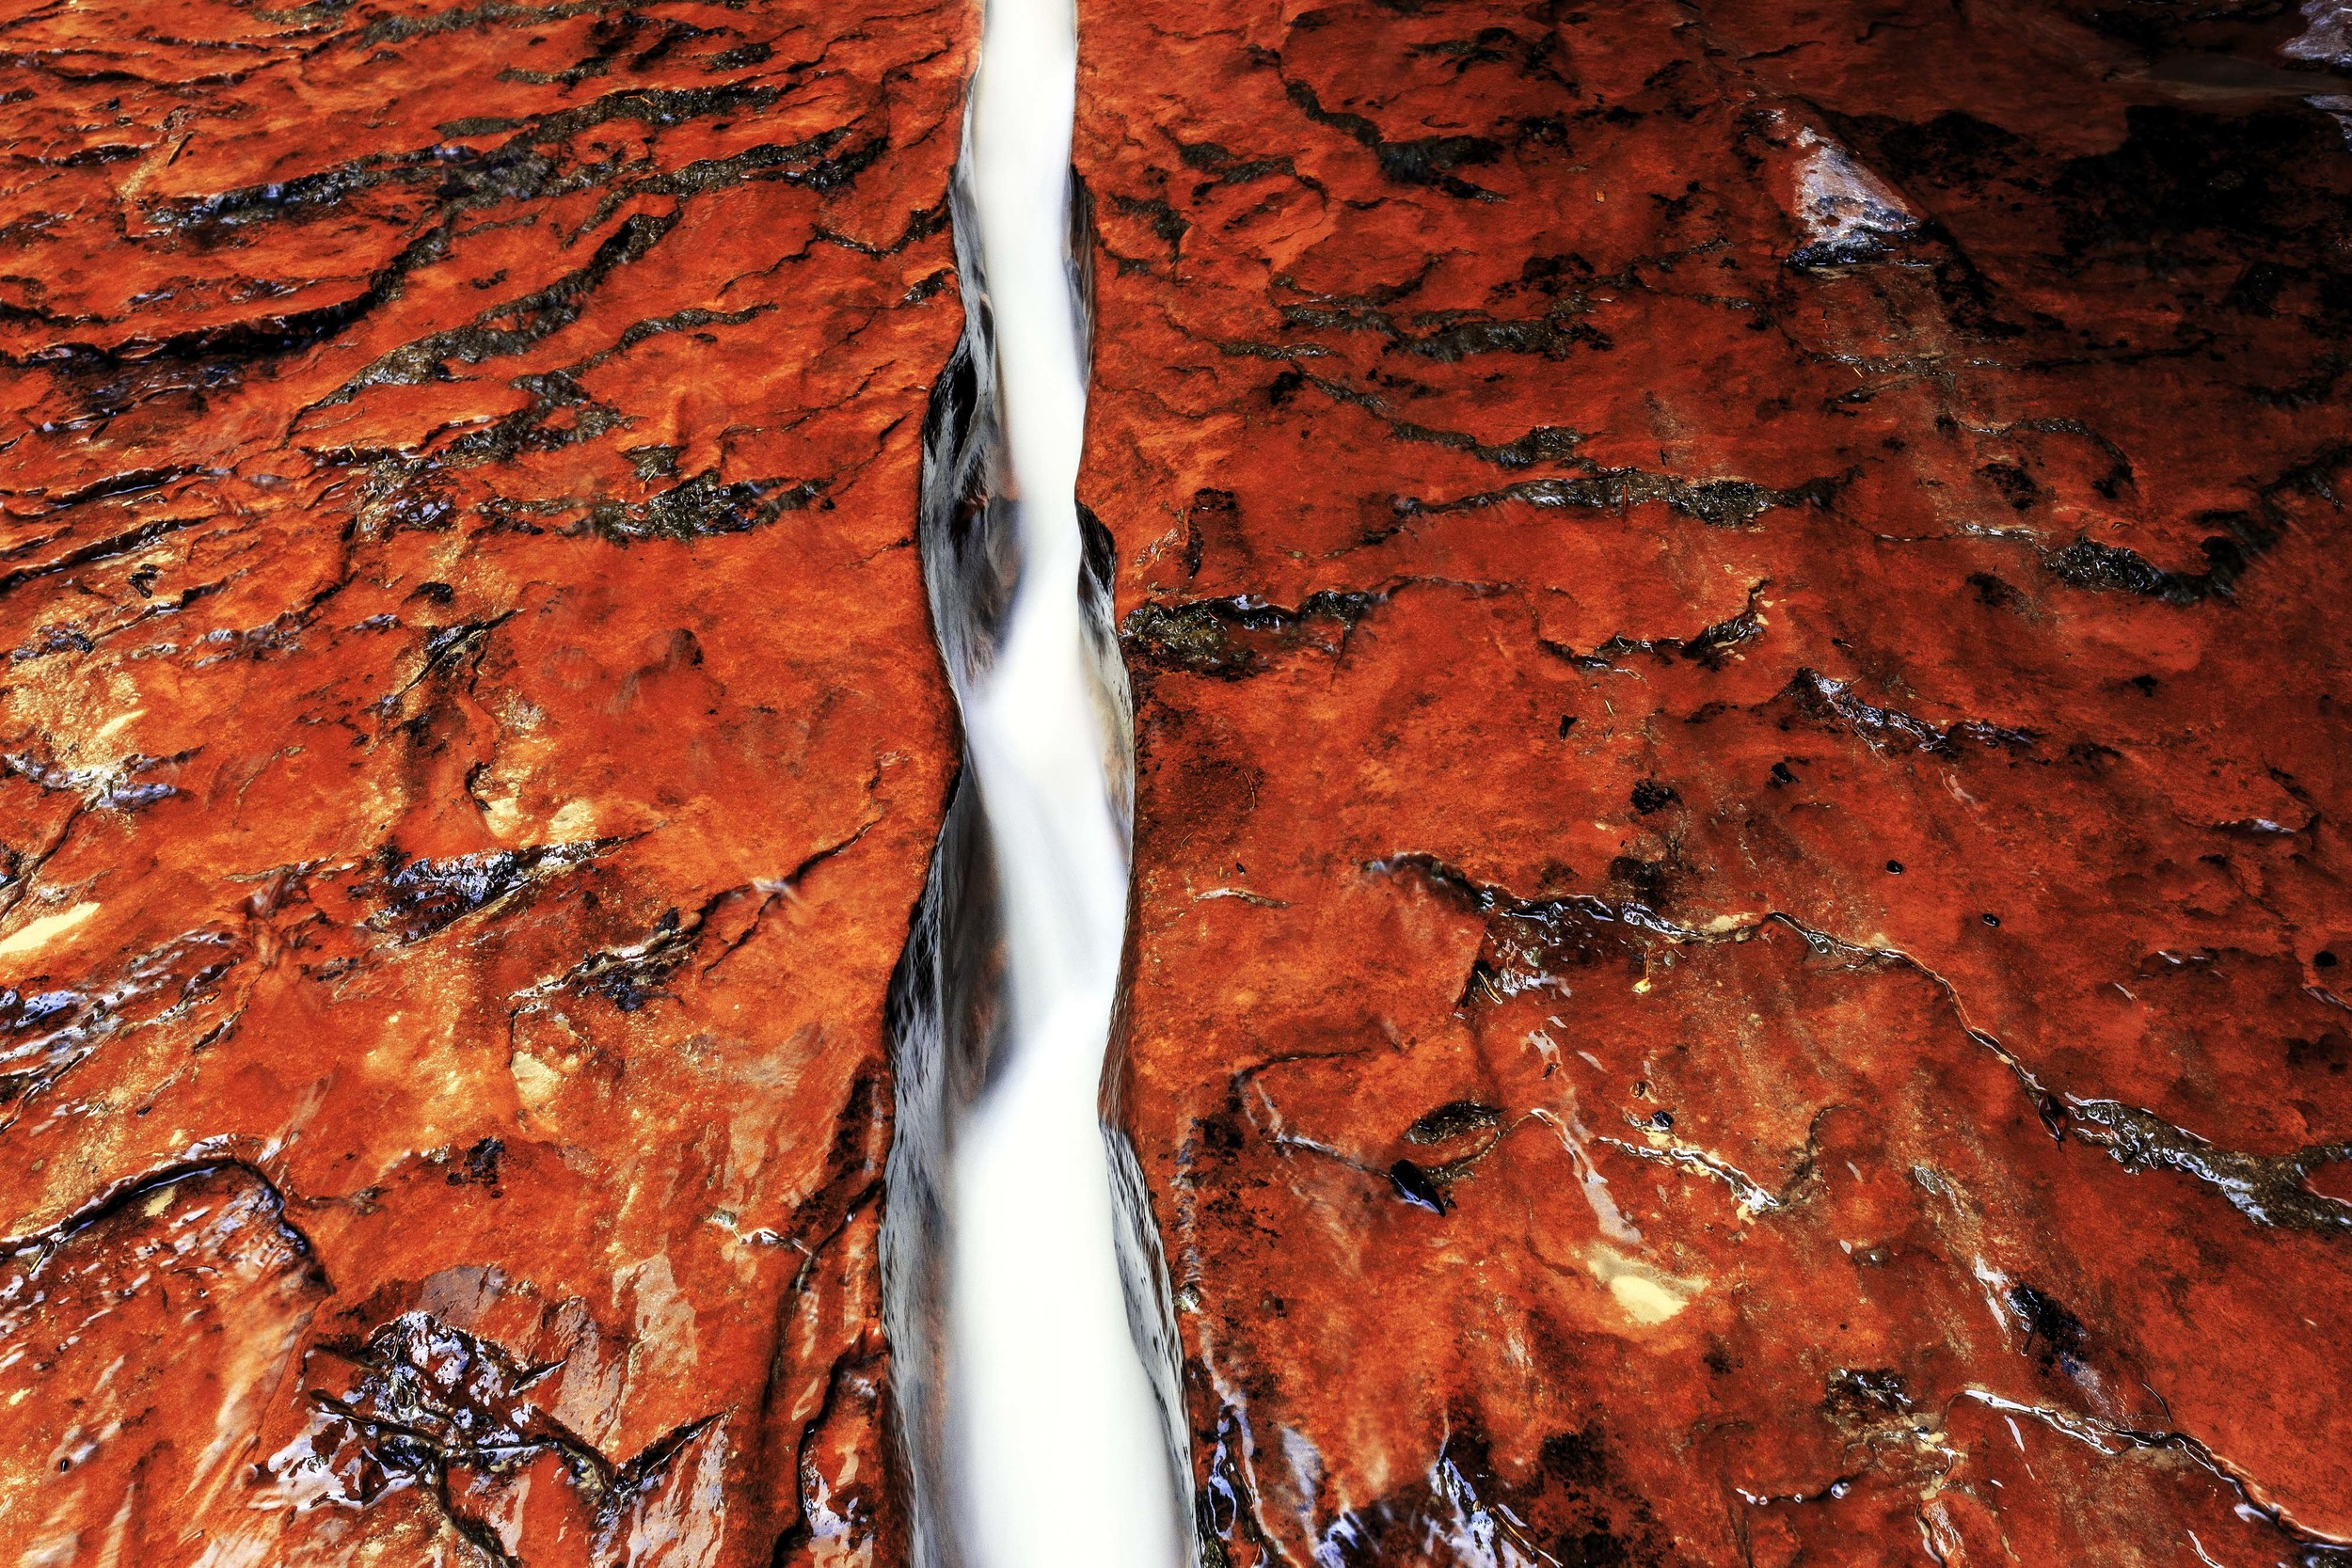 The water from the Subway canyon in Zion National Park is channeled into this narrow crack in the stone for a brief section of the creek, forming this striking contrast of white water and bright red stone.